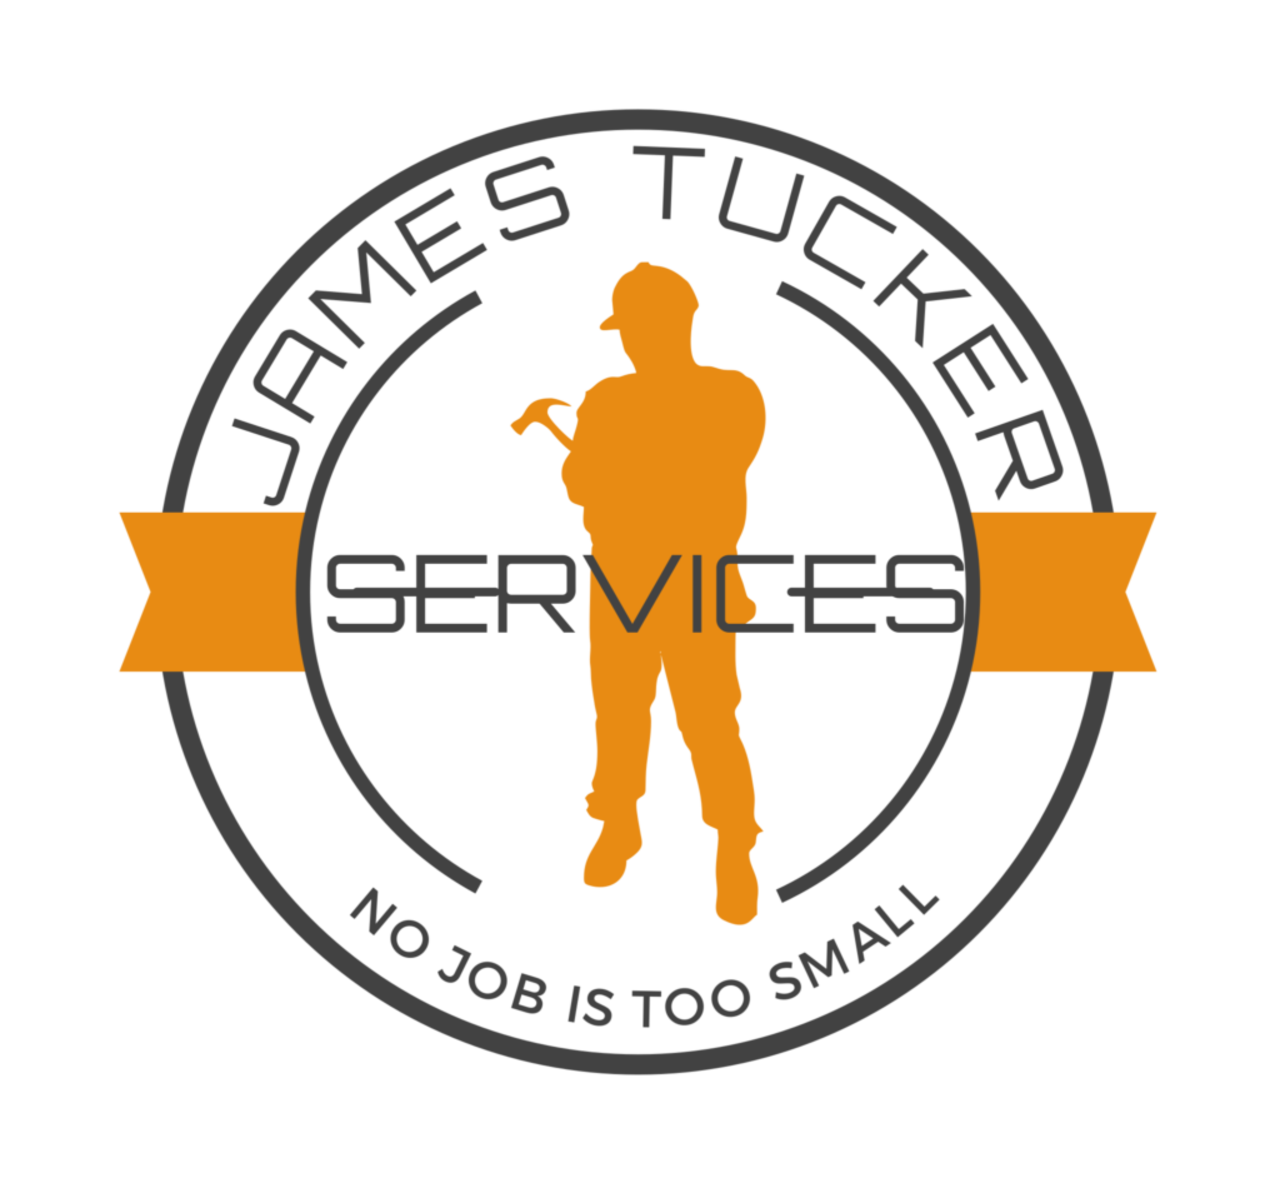 James Tucker Services  - Services - Essential Business in Ames IA